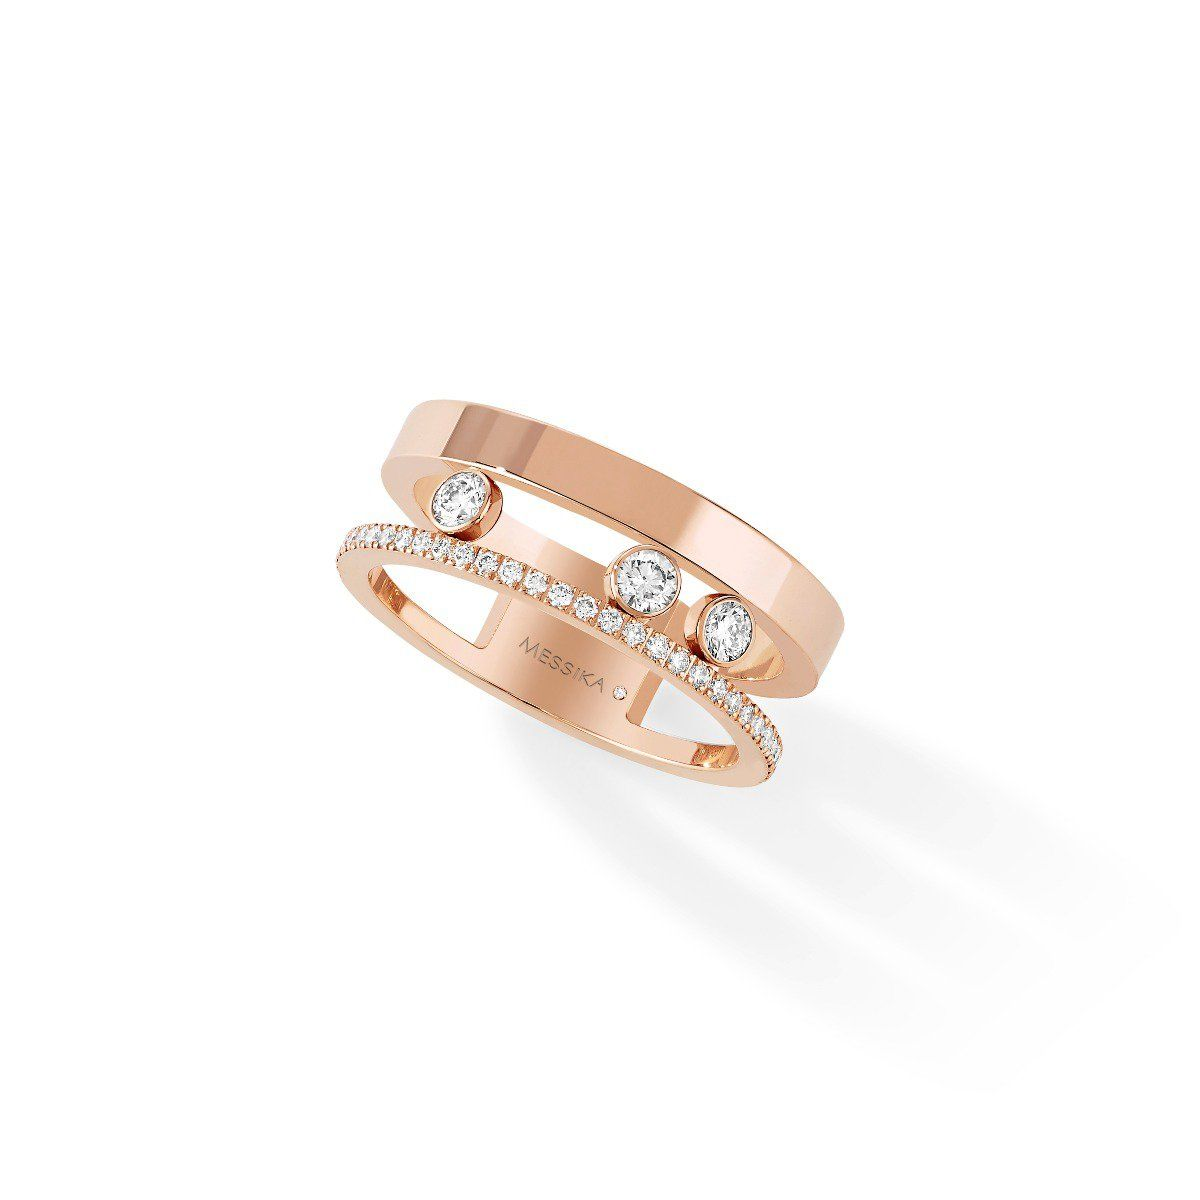 Move romane ring pink gold